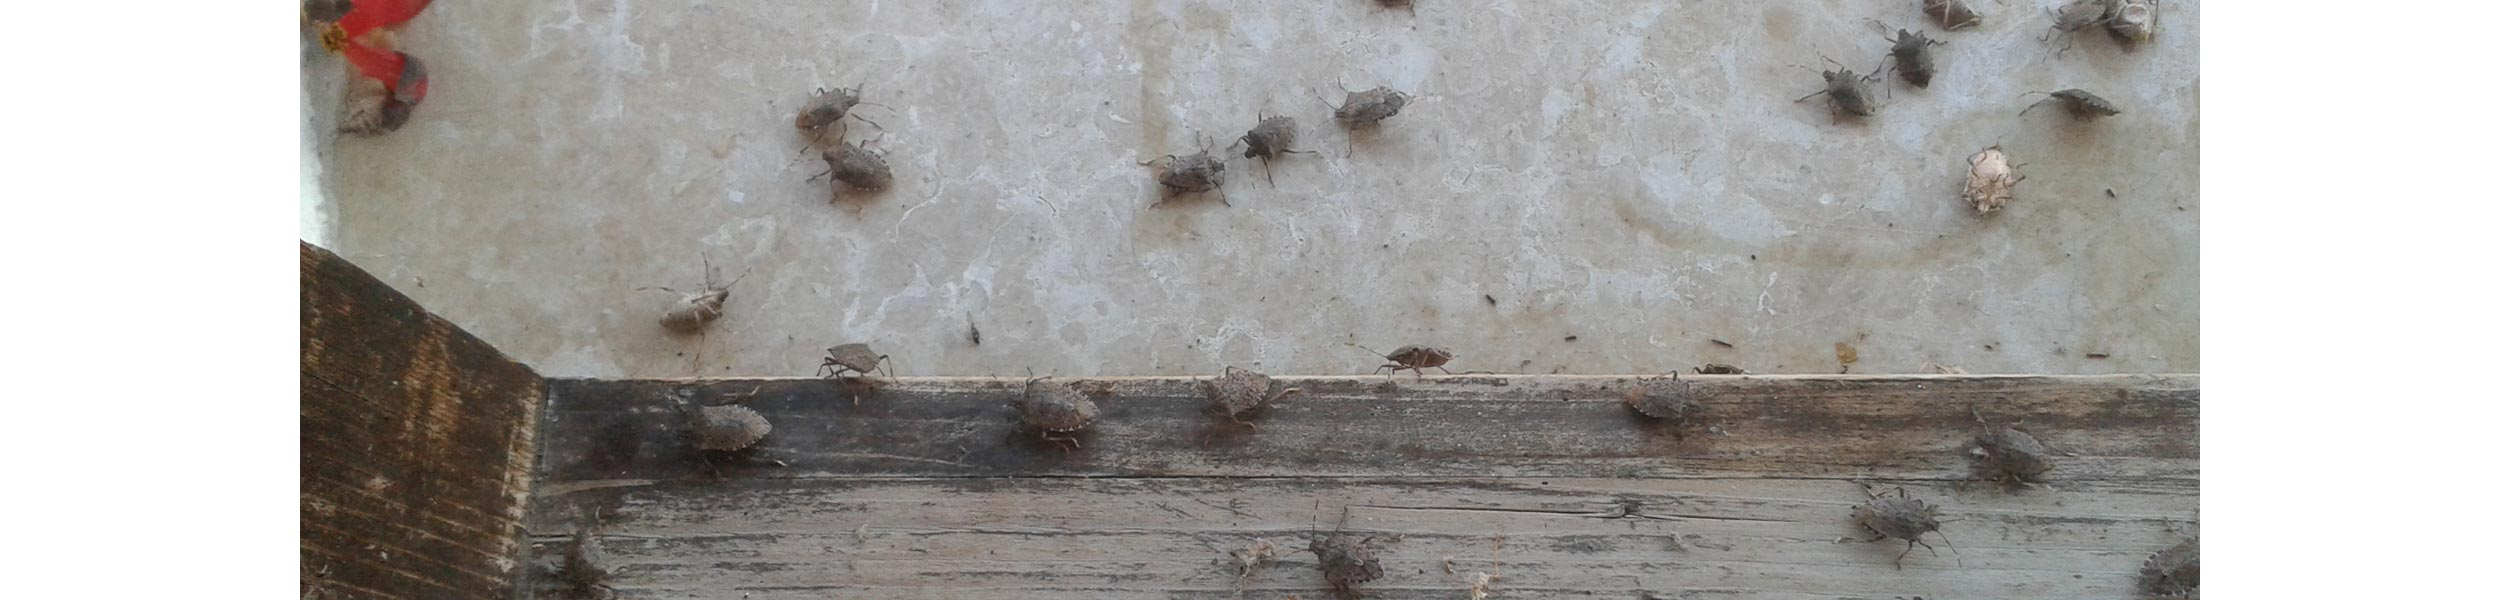 OPC-Pest-Services-Stink-Bug-Infestation-Home-Wall-Ceiling-Header